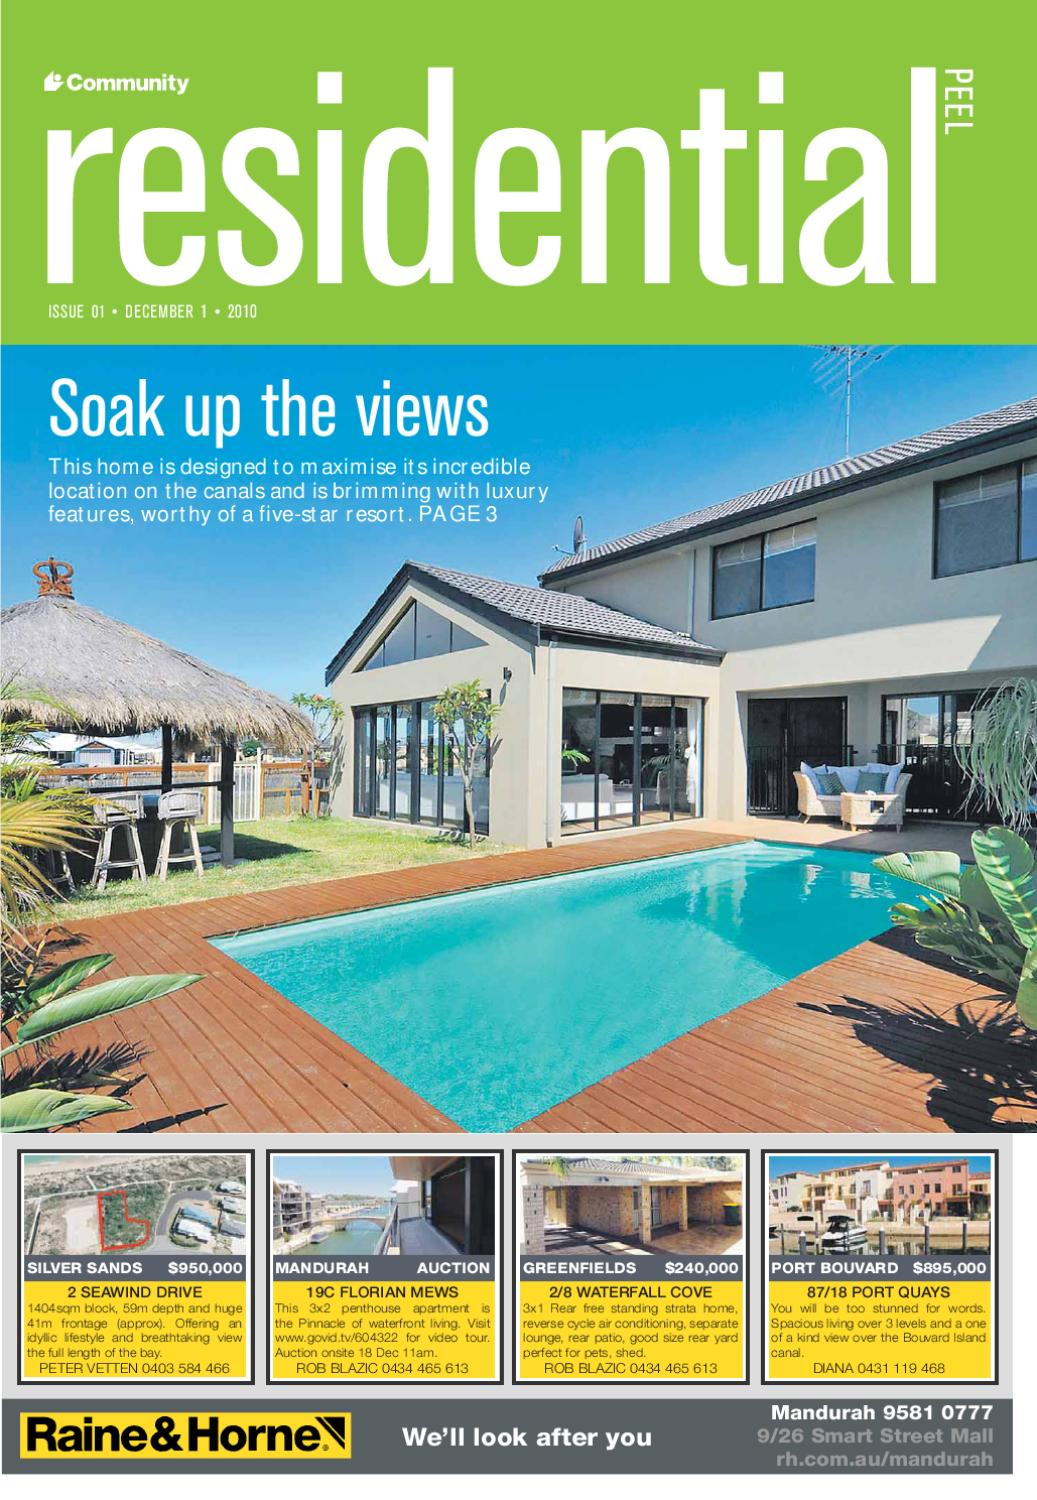 Residential Magazine - Peel #1 by CommunityNewspaperGroup